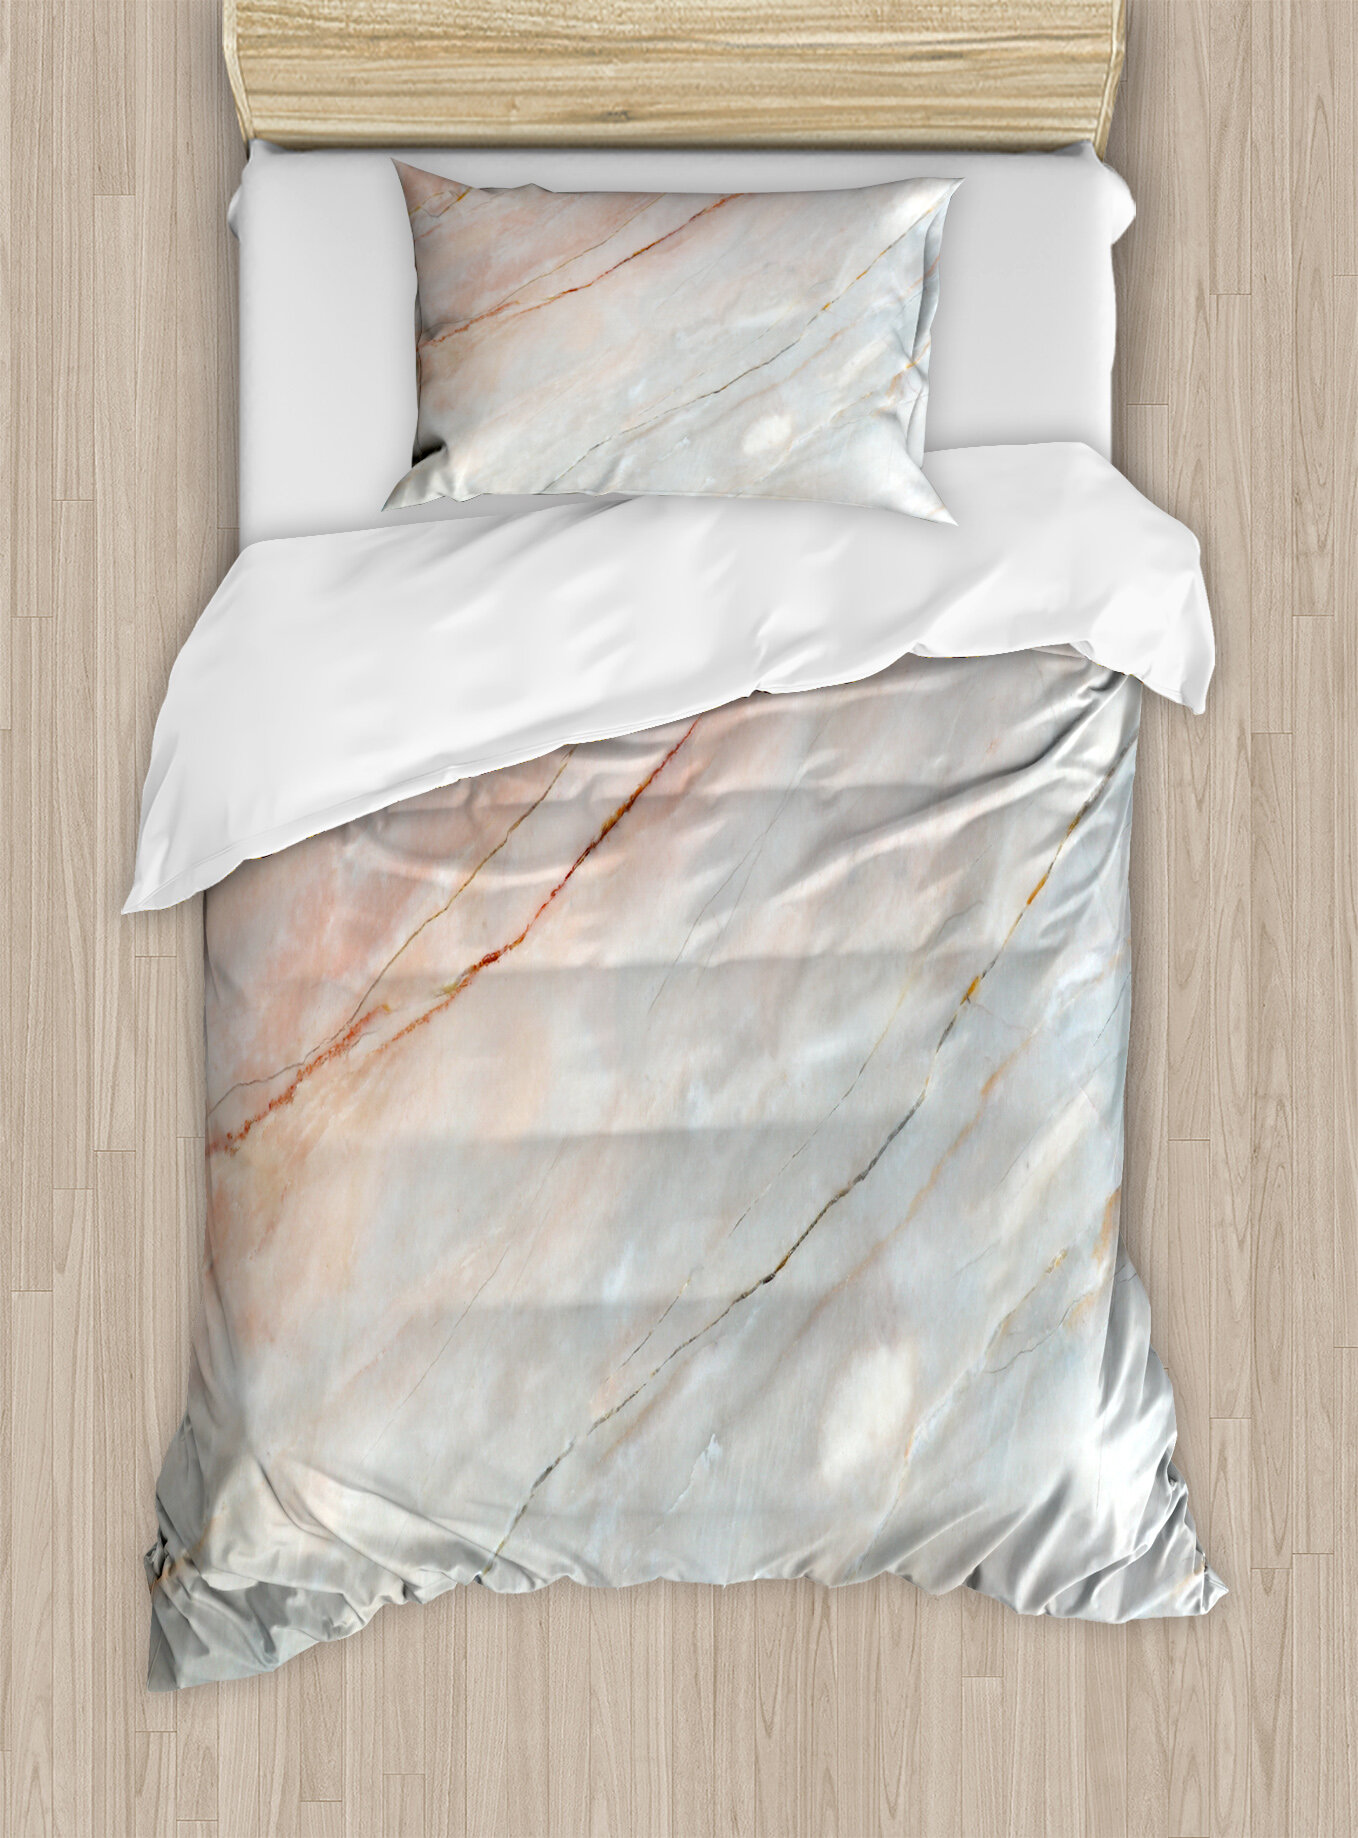 3041746bdf Ambesonne Marble Onyx Stone Textured Nature Featured Authentic Scratches  Art Illustration Duvet Cover Set | Wayfair